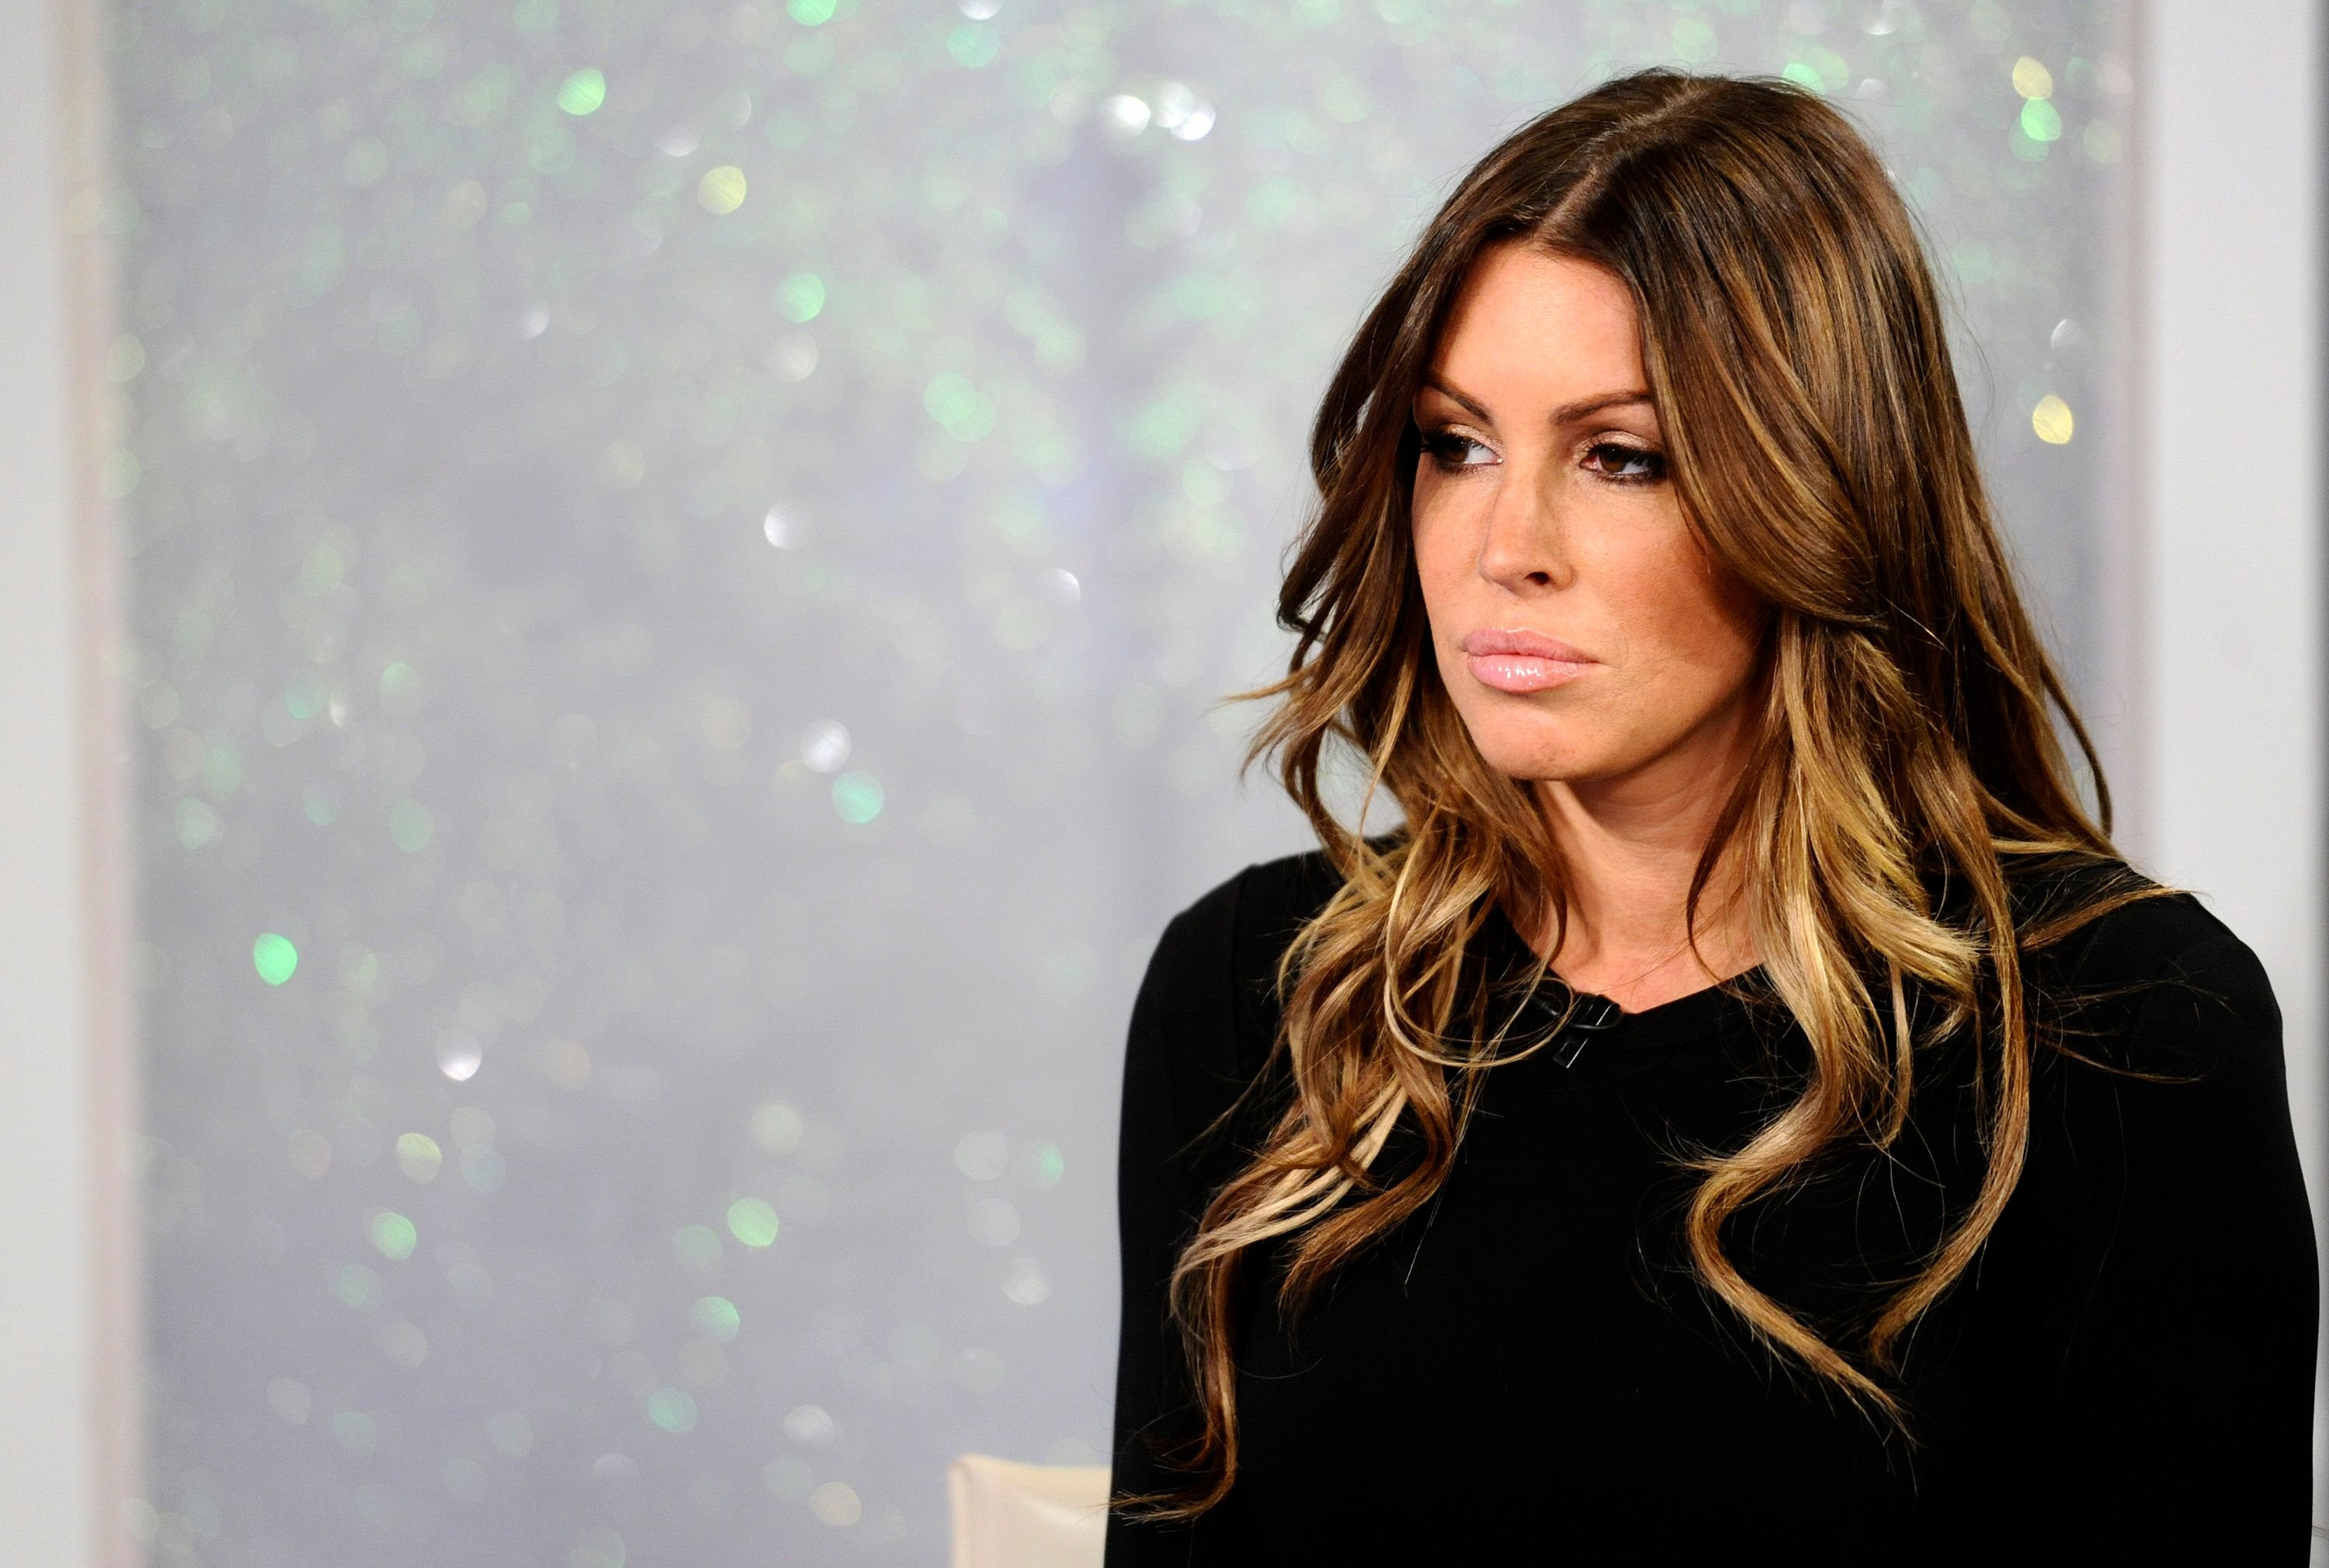 """Rachel Uchitel on NBC News' """"Today"""" show in 2010 